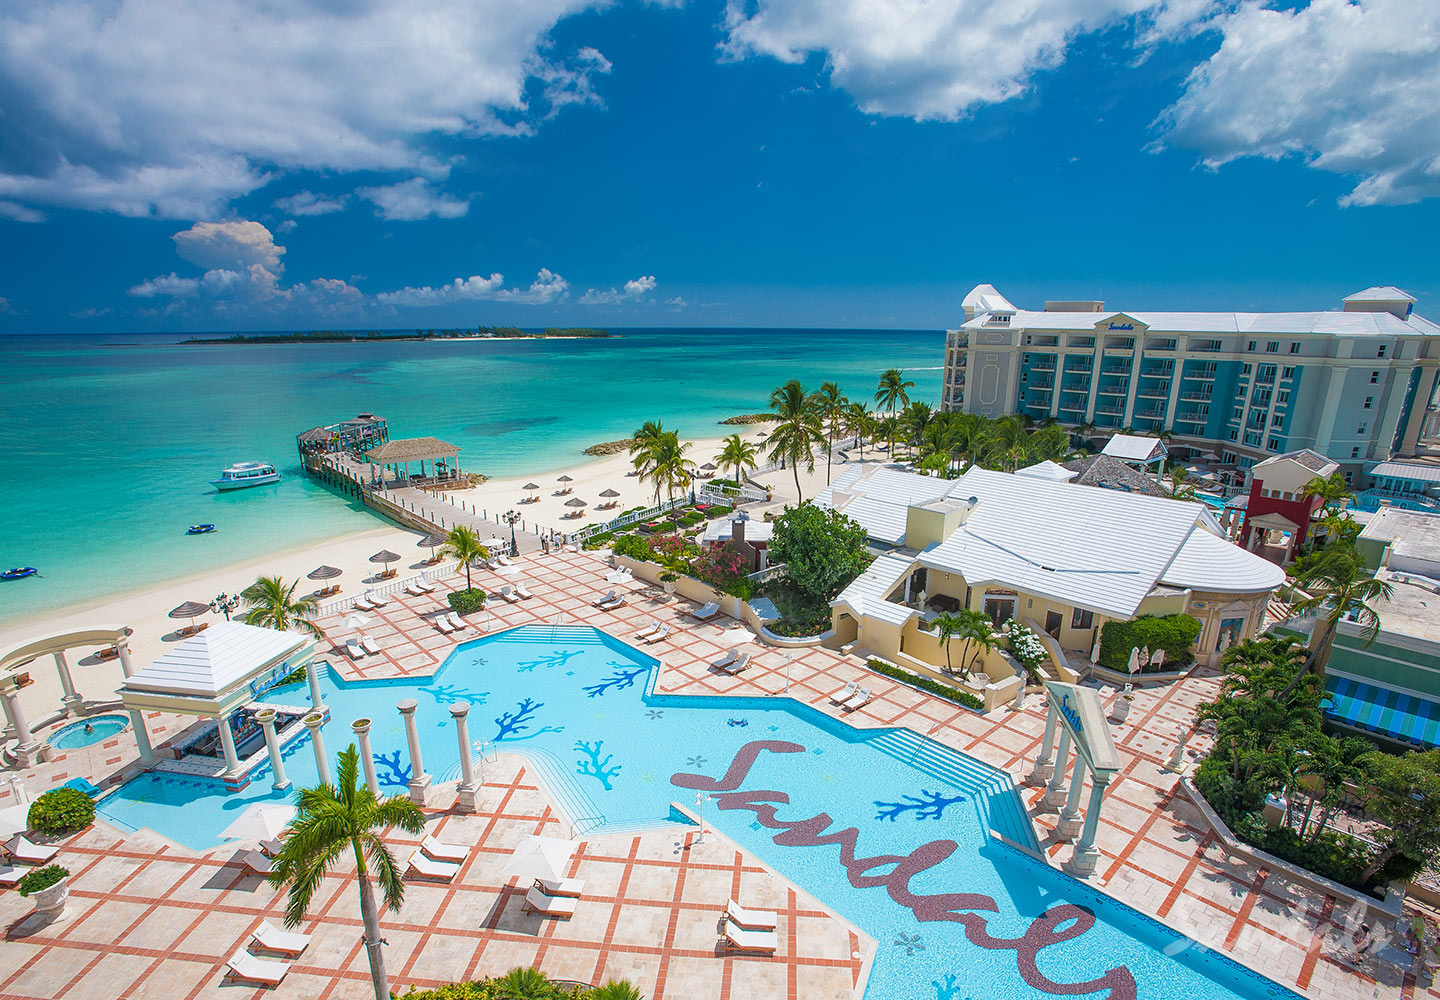 Travel Agency All-Inclusive Resort Sandals Royal Bahamian 002